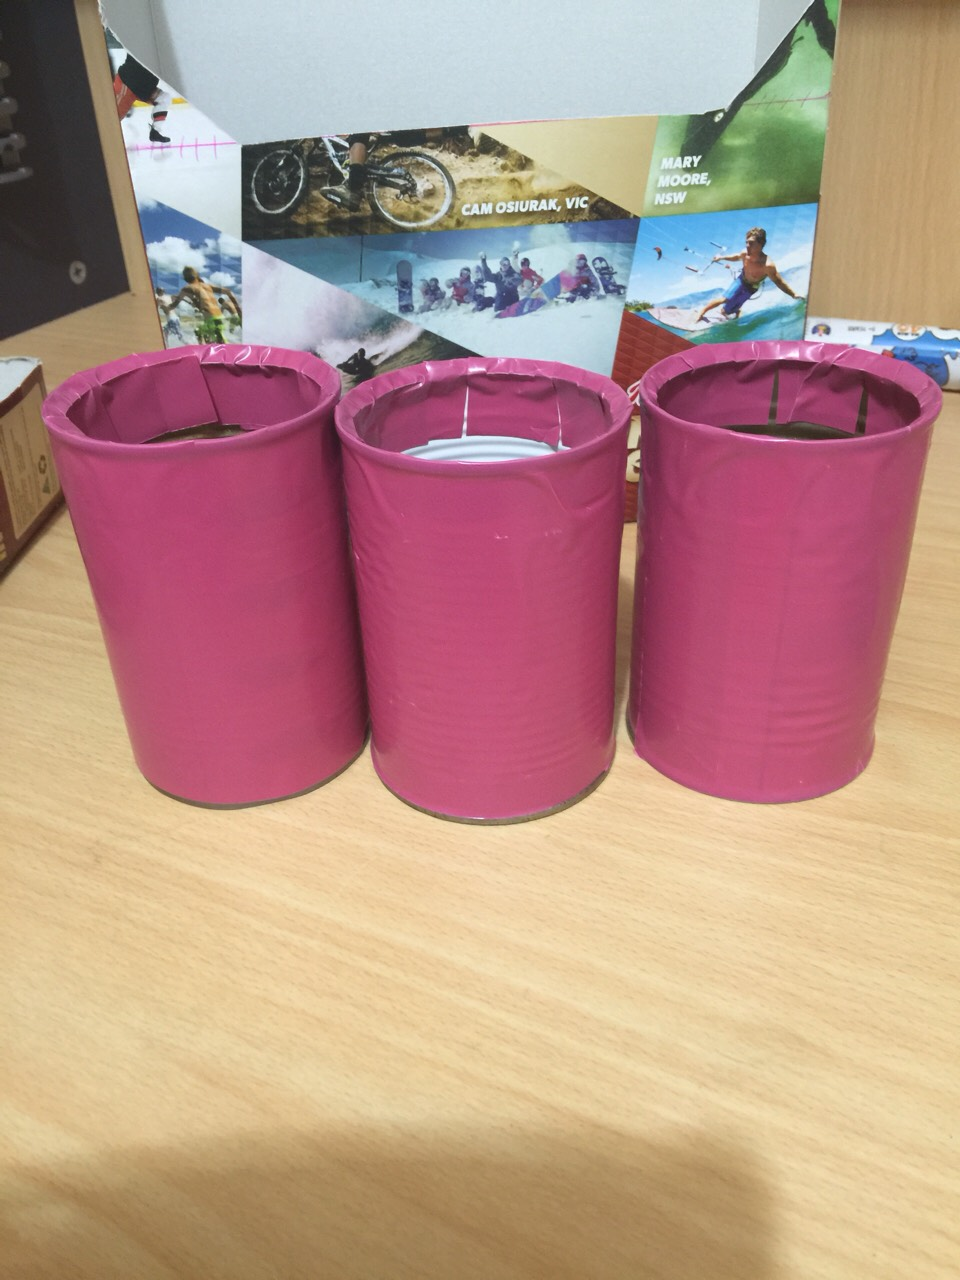 Now cover the cans as you wish. My daughter loves pink. So I made them pink.